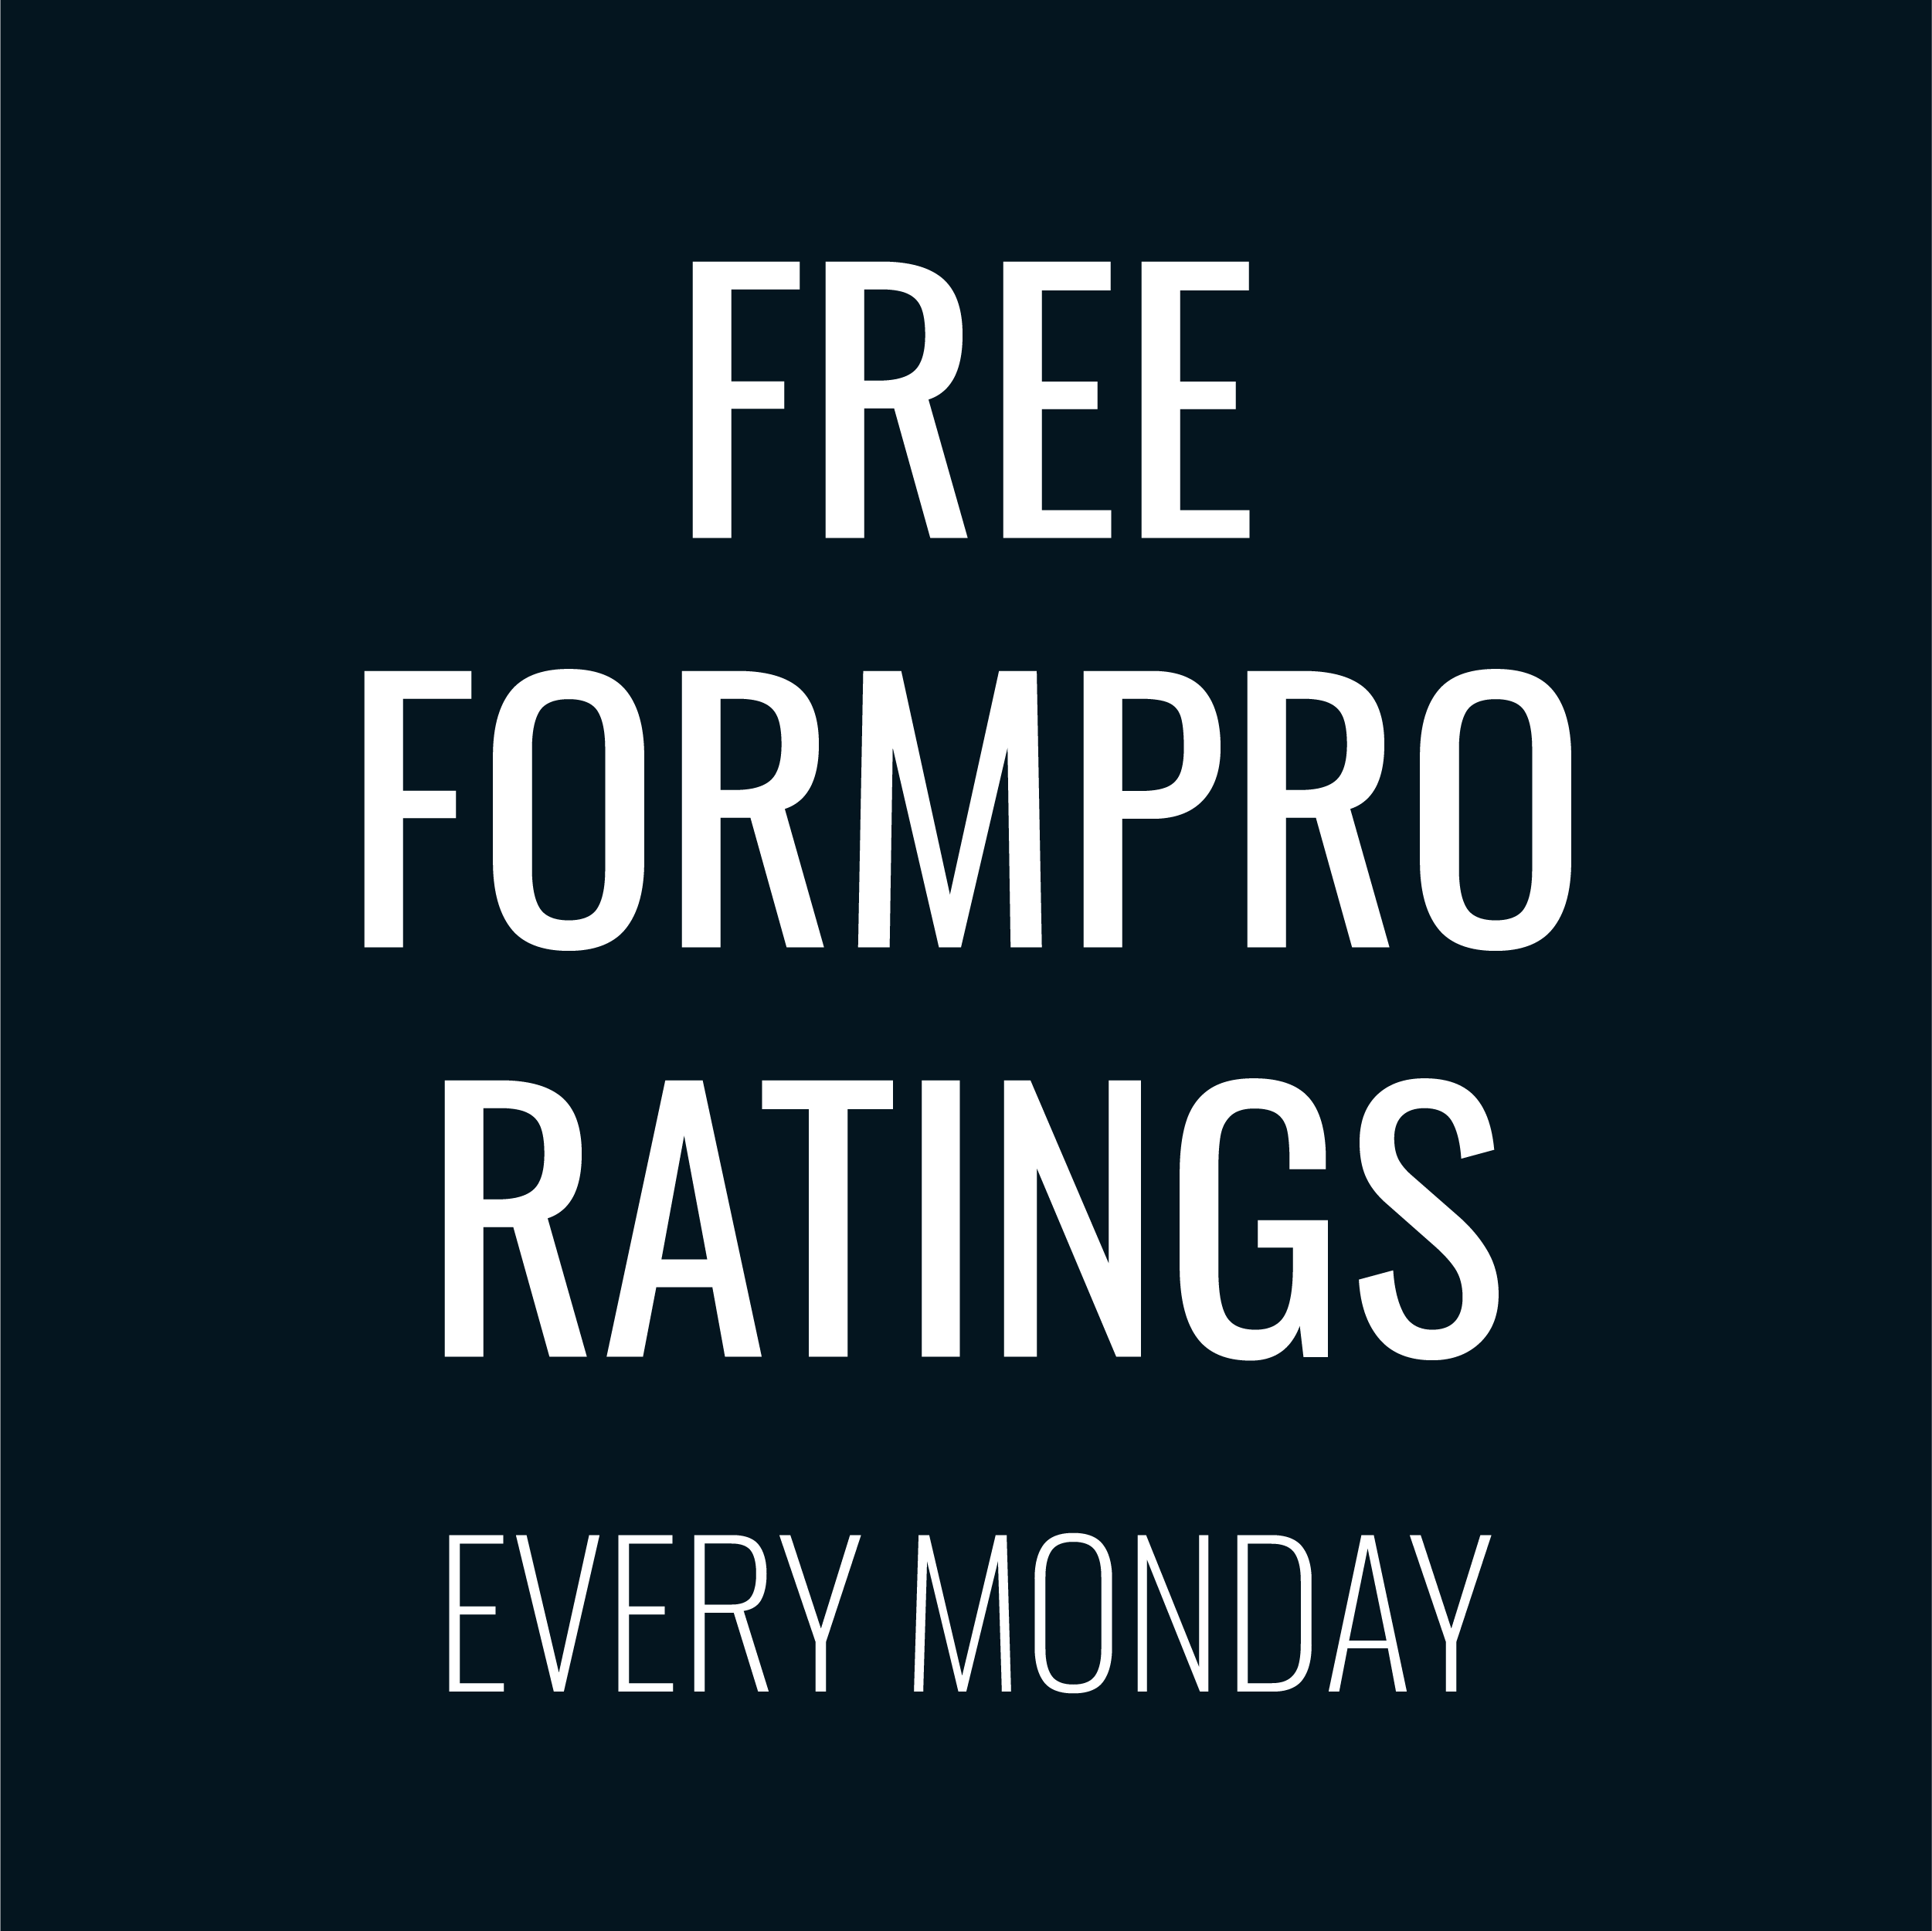 Free Greyhound Ratings Monday 21 January